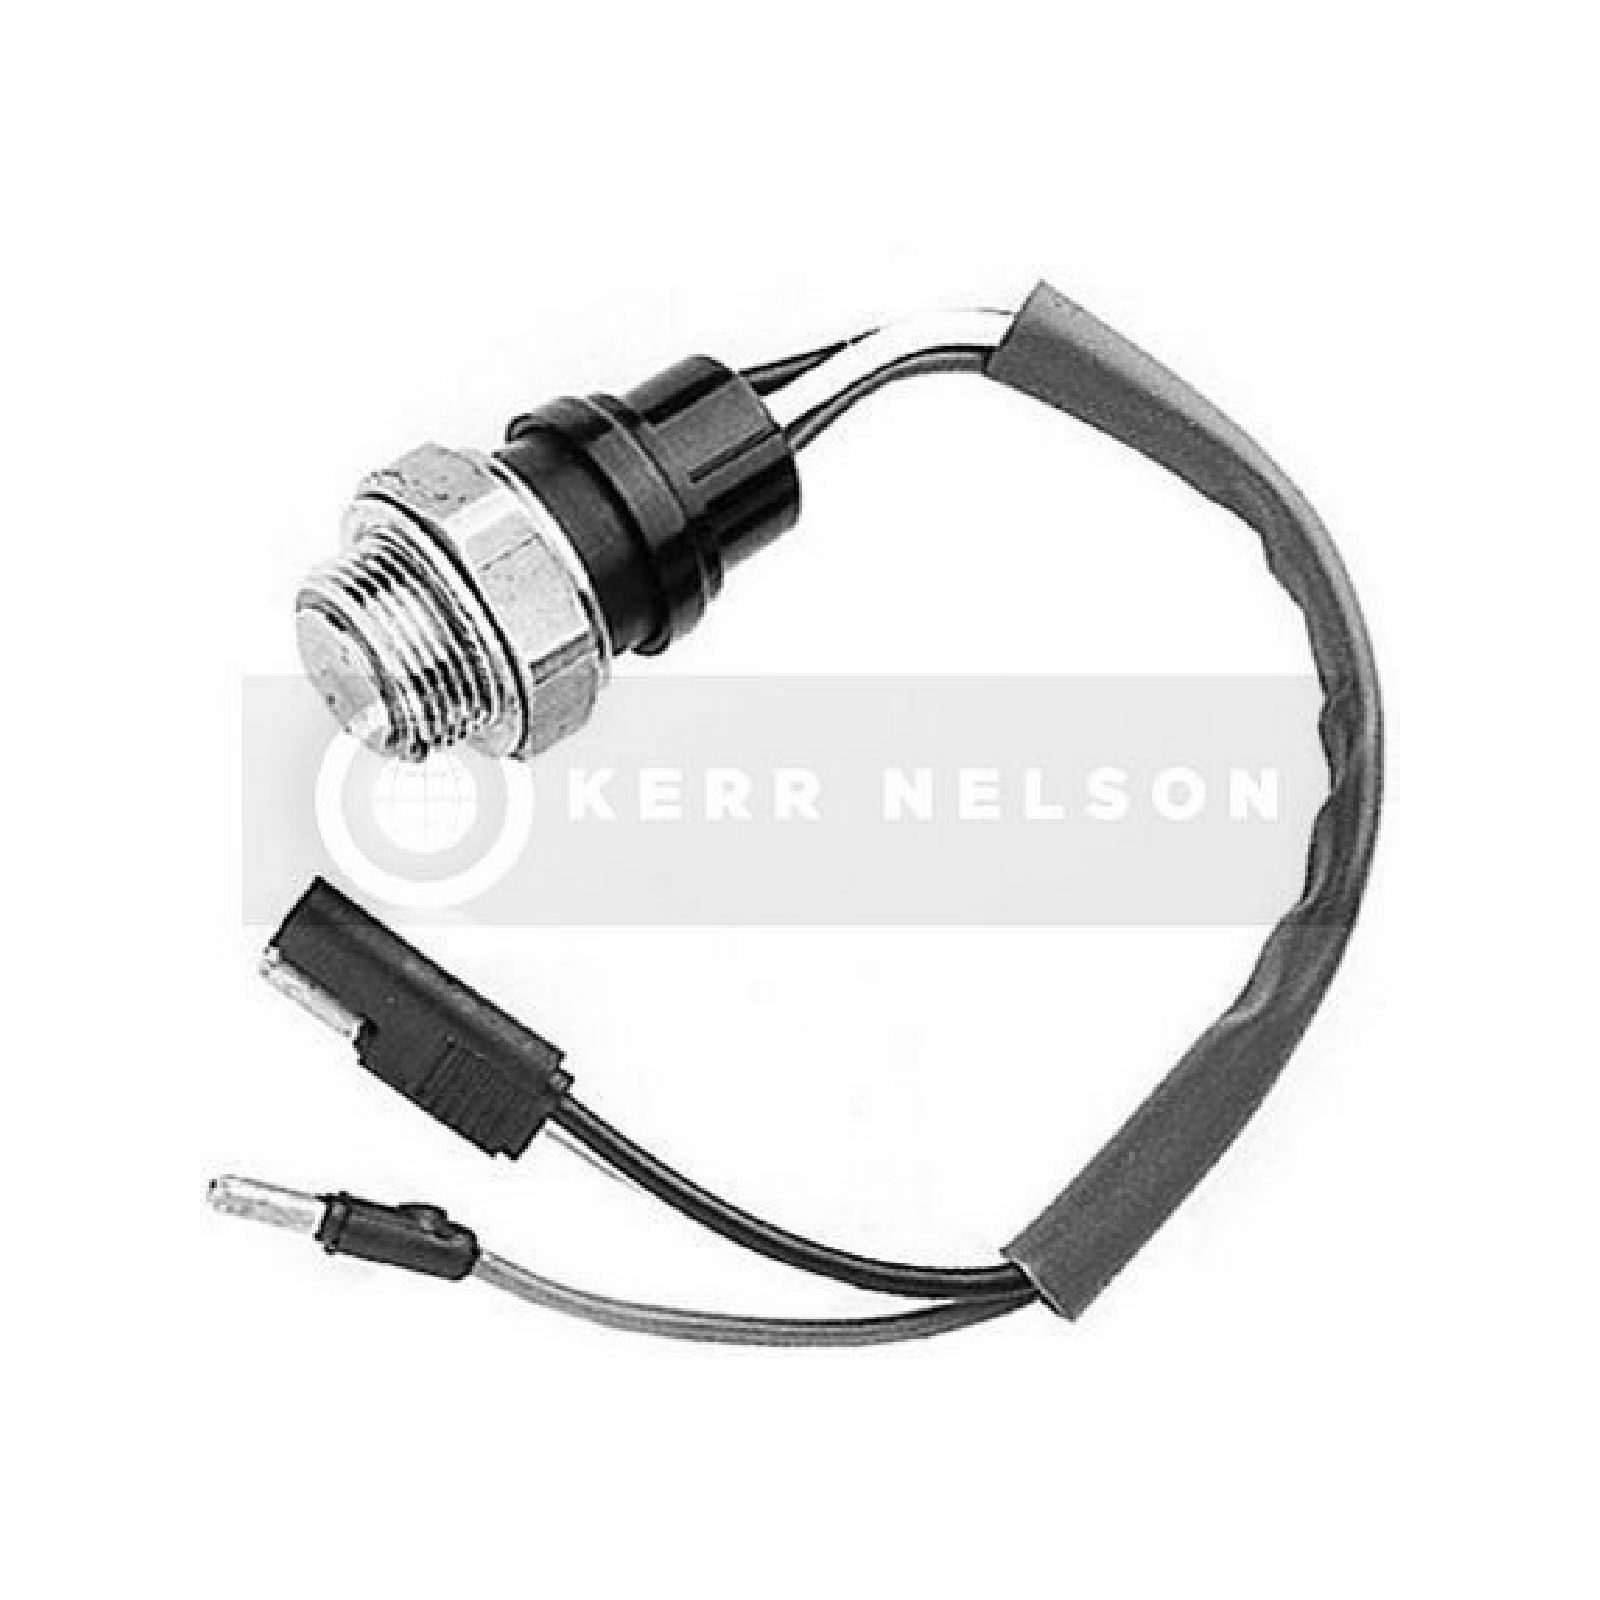 Citroen C25 290 2.5 D Genuine Kerr Nelson Radiator Fan Temp Switch 1 of  1FREE Shipping See More